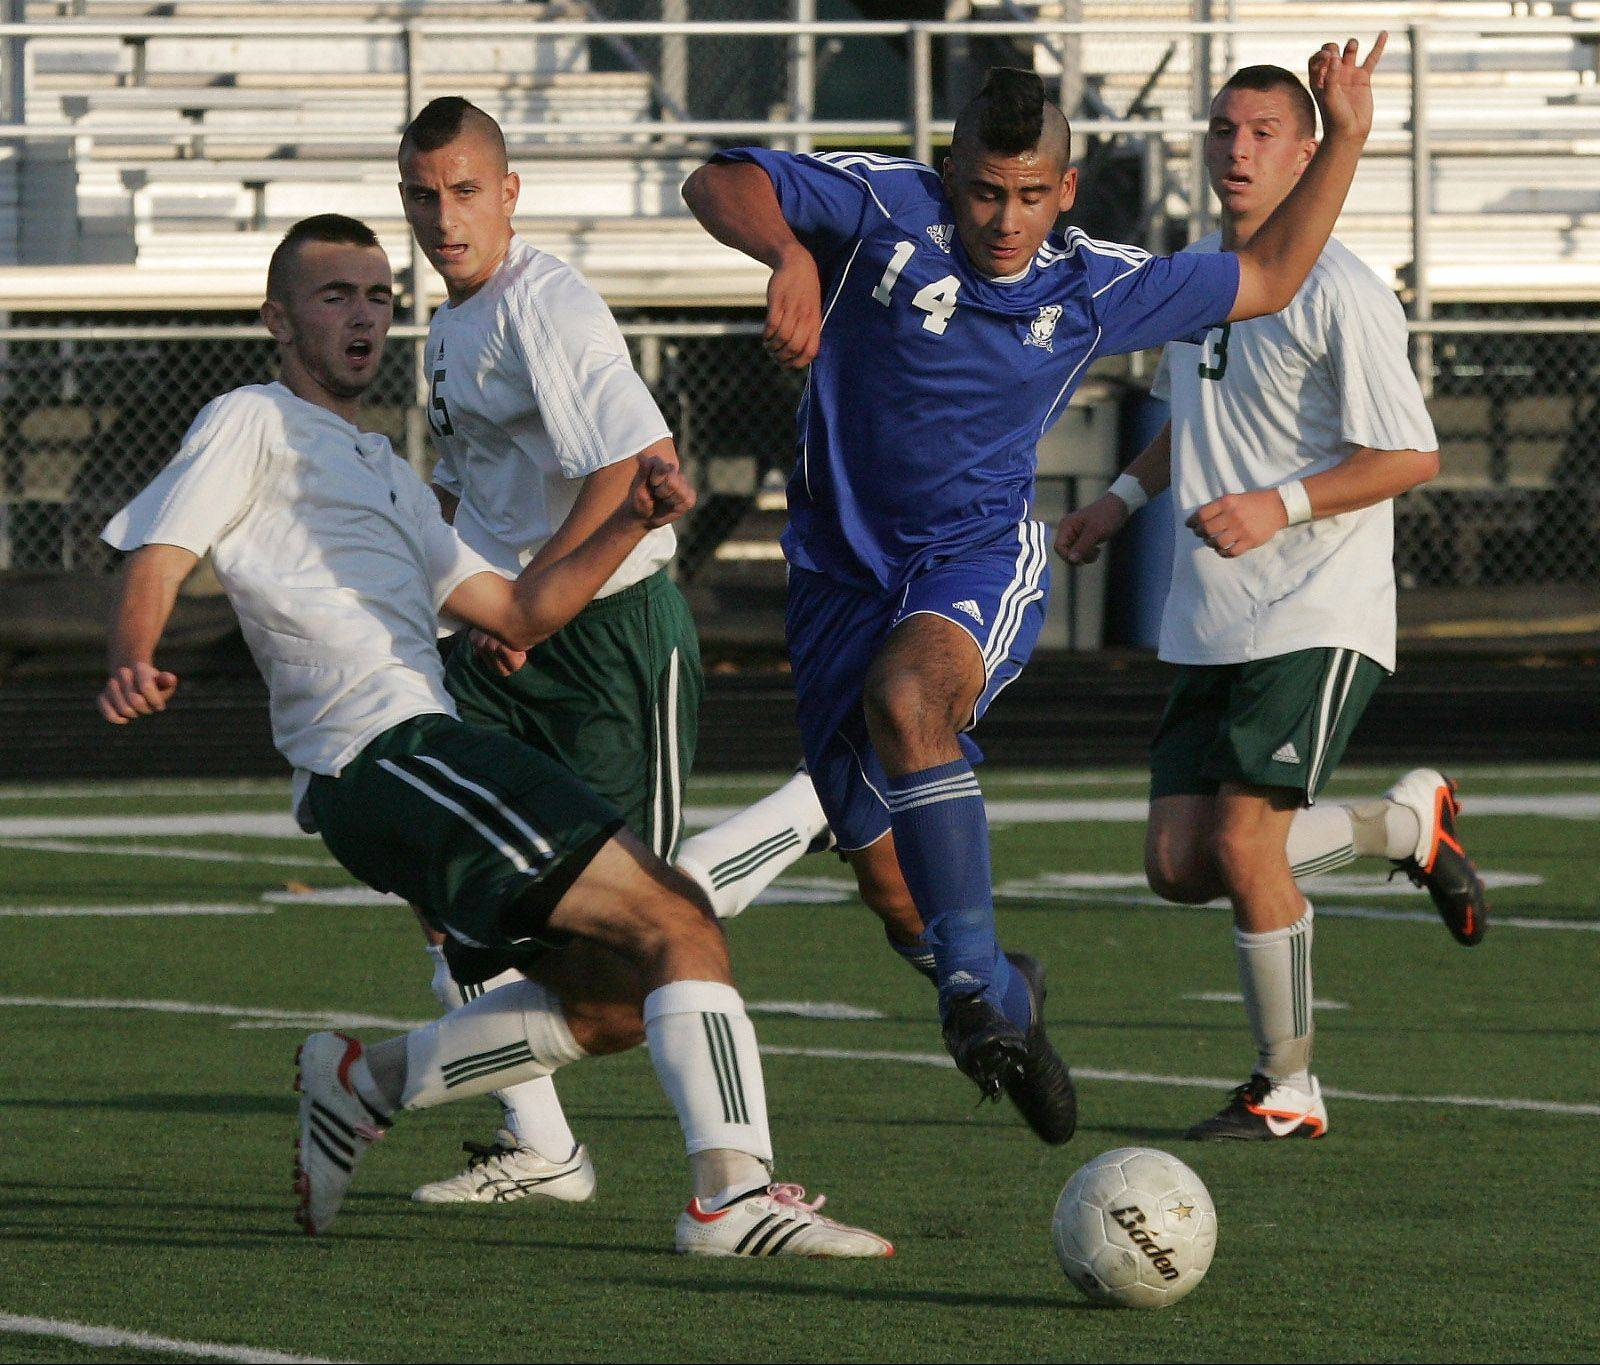 Lake Zurich midfielder Miguel Hernandez dribbles past several Stevenson players during Class 3A regional semifinal play Tuesday in Lincolnshire.